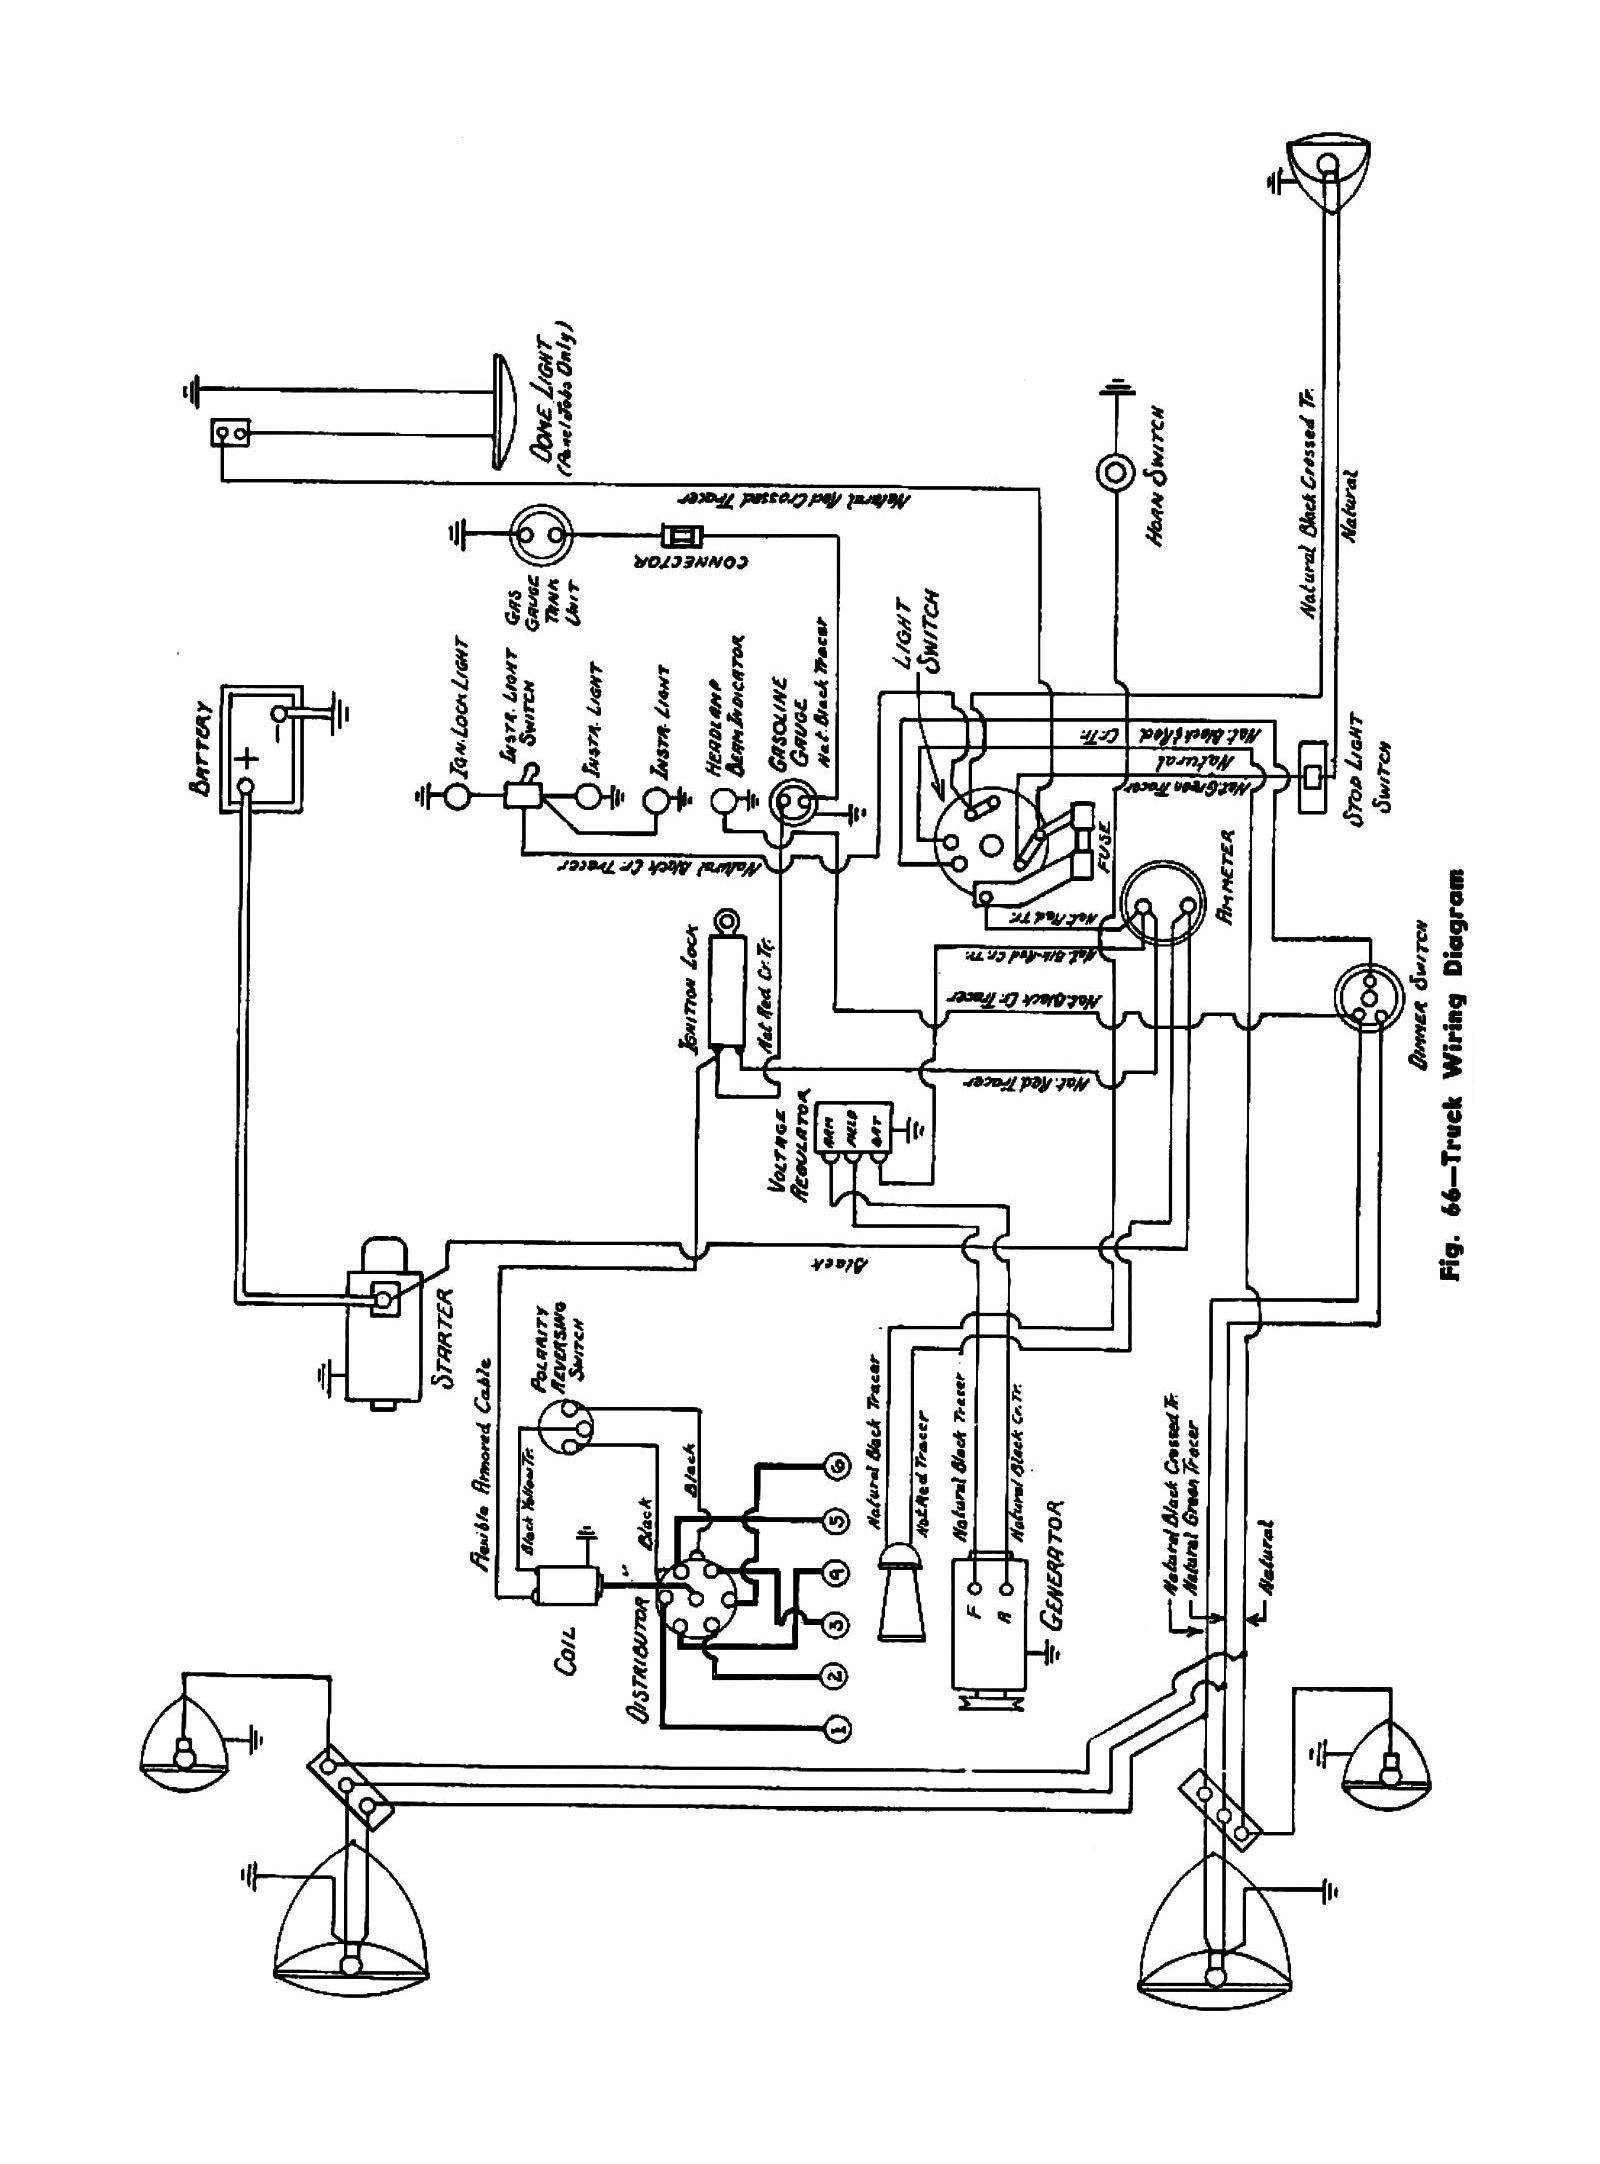 1954 Dodge Truck Wire Schematic - Wiring Diagram Online on dodge 318 distributor diagram, dodge neon wiring diagrams, dodge ram ignition diagram, dodge electrical schematics, chevy s10 schematics, dodge truck trailer wiring, dodge wiring color codes, 1973 chevy truck electrical schematics, dodge alternator wiring, dodge ignition wiring diagram, 2002 dodge caravan schematics,